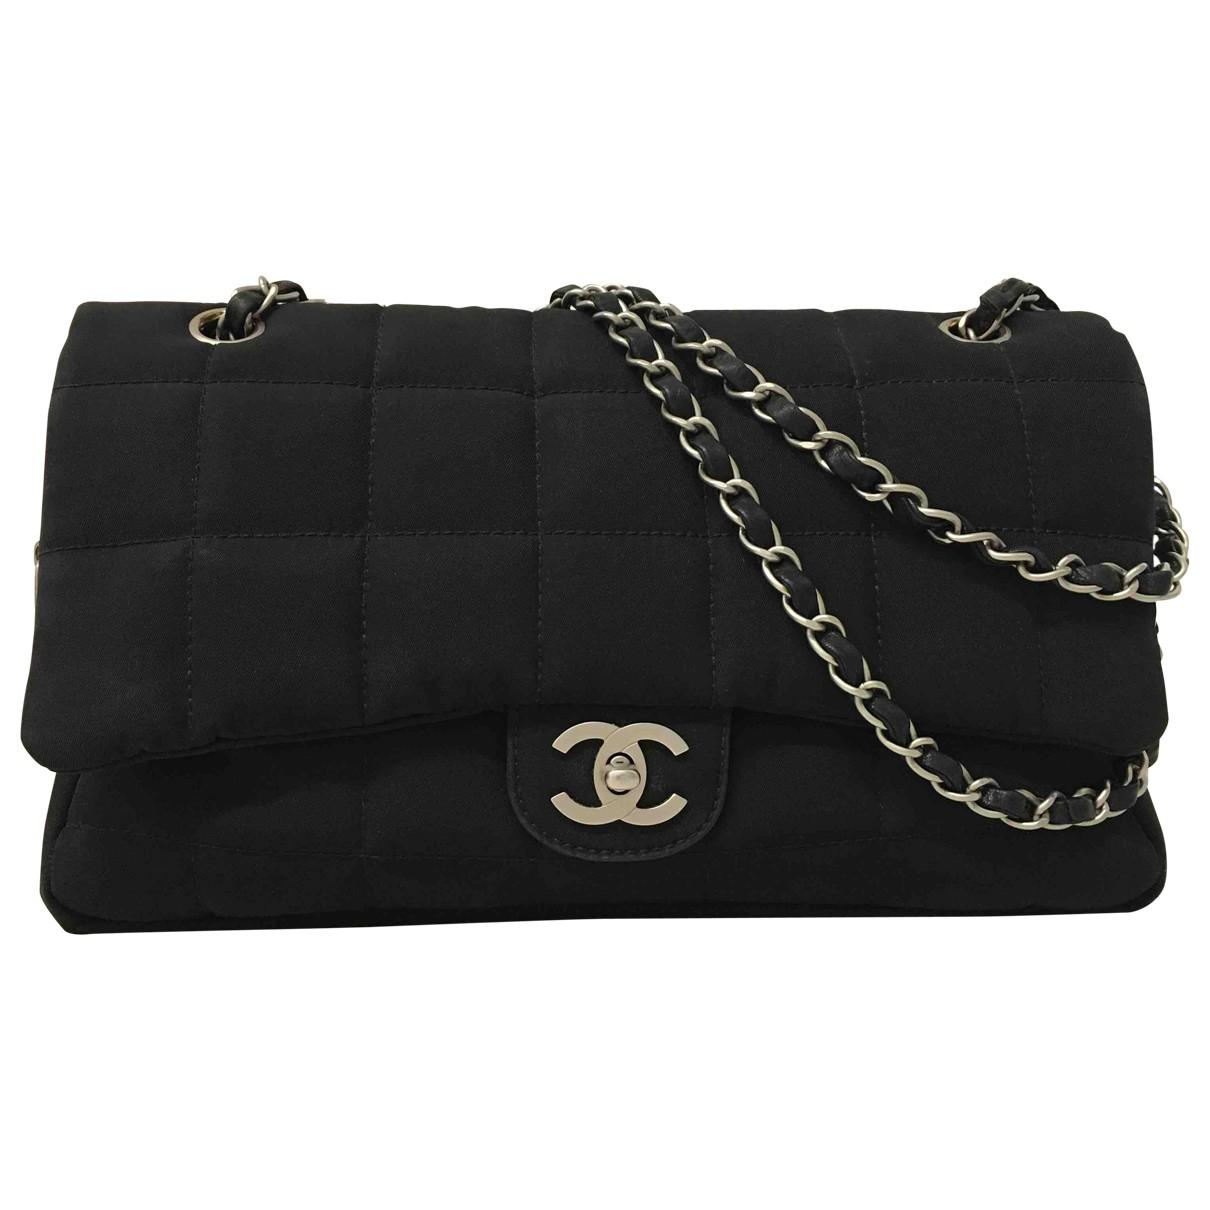 666a84c2a179 Chanel. Women s Black Timeless Cloth Handbag.  1,932  1,522 From Vestiaire  Collective ...